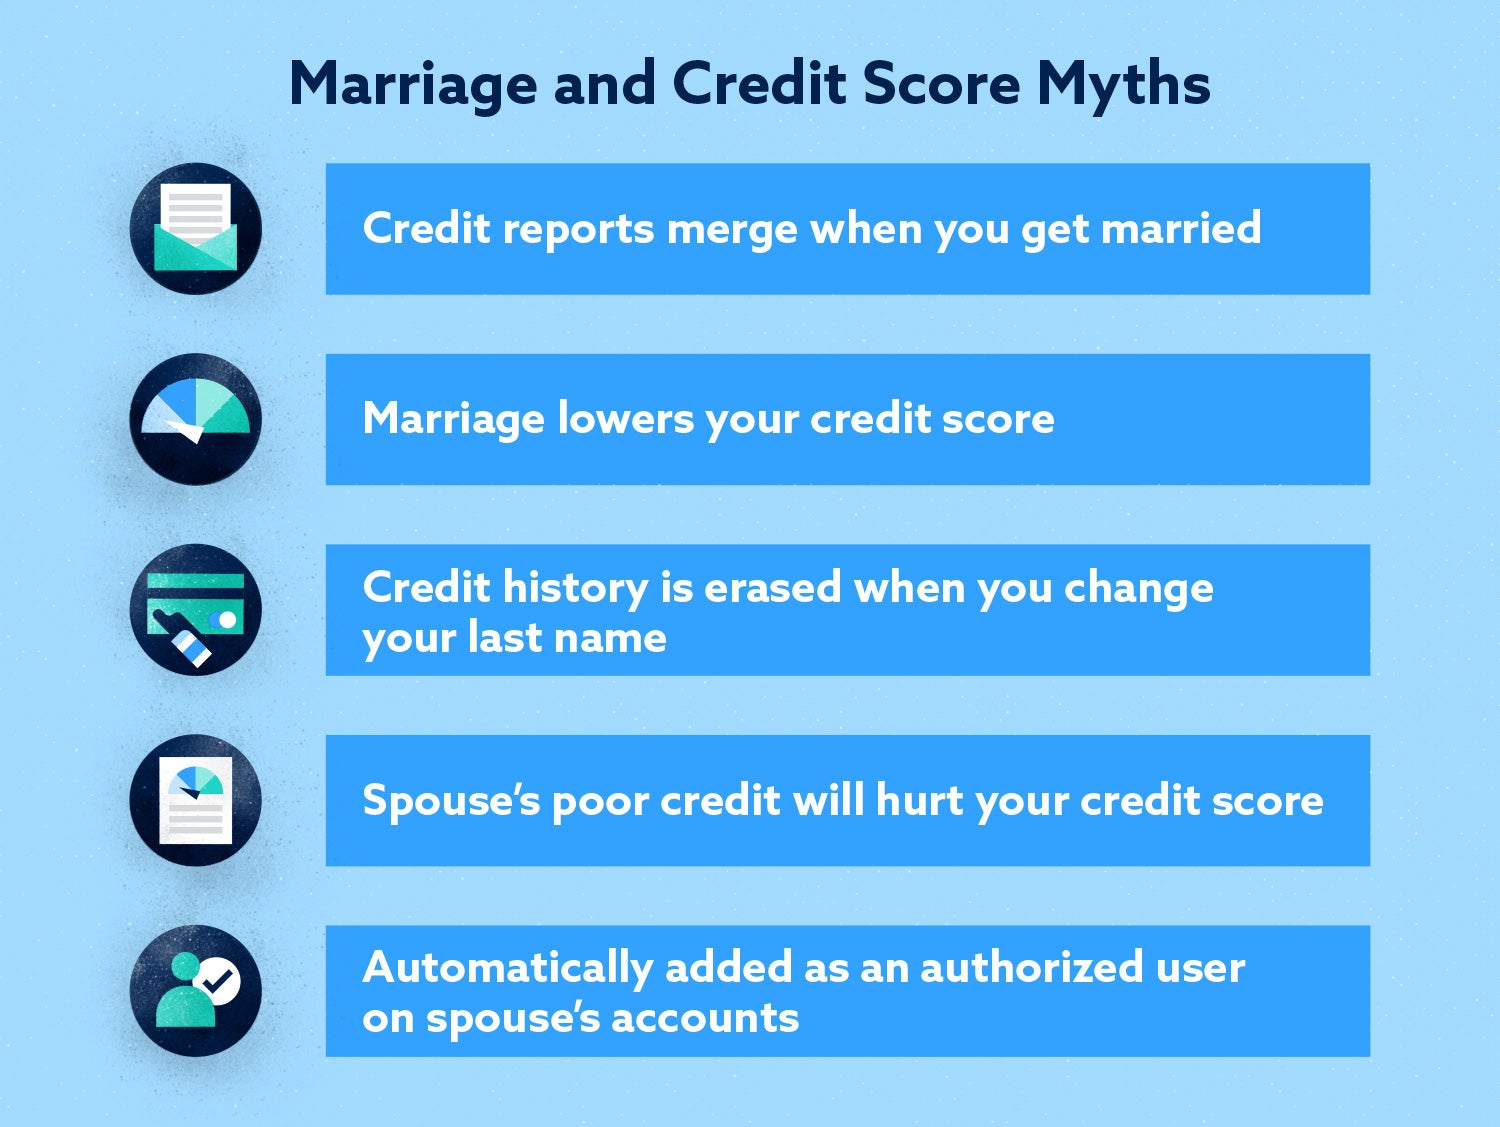 Marriage and Credit Score Myths Image